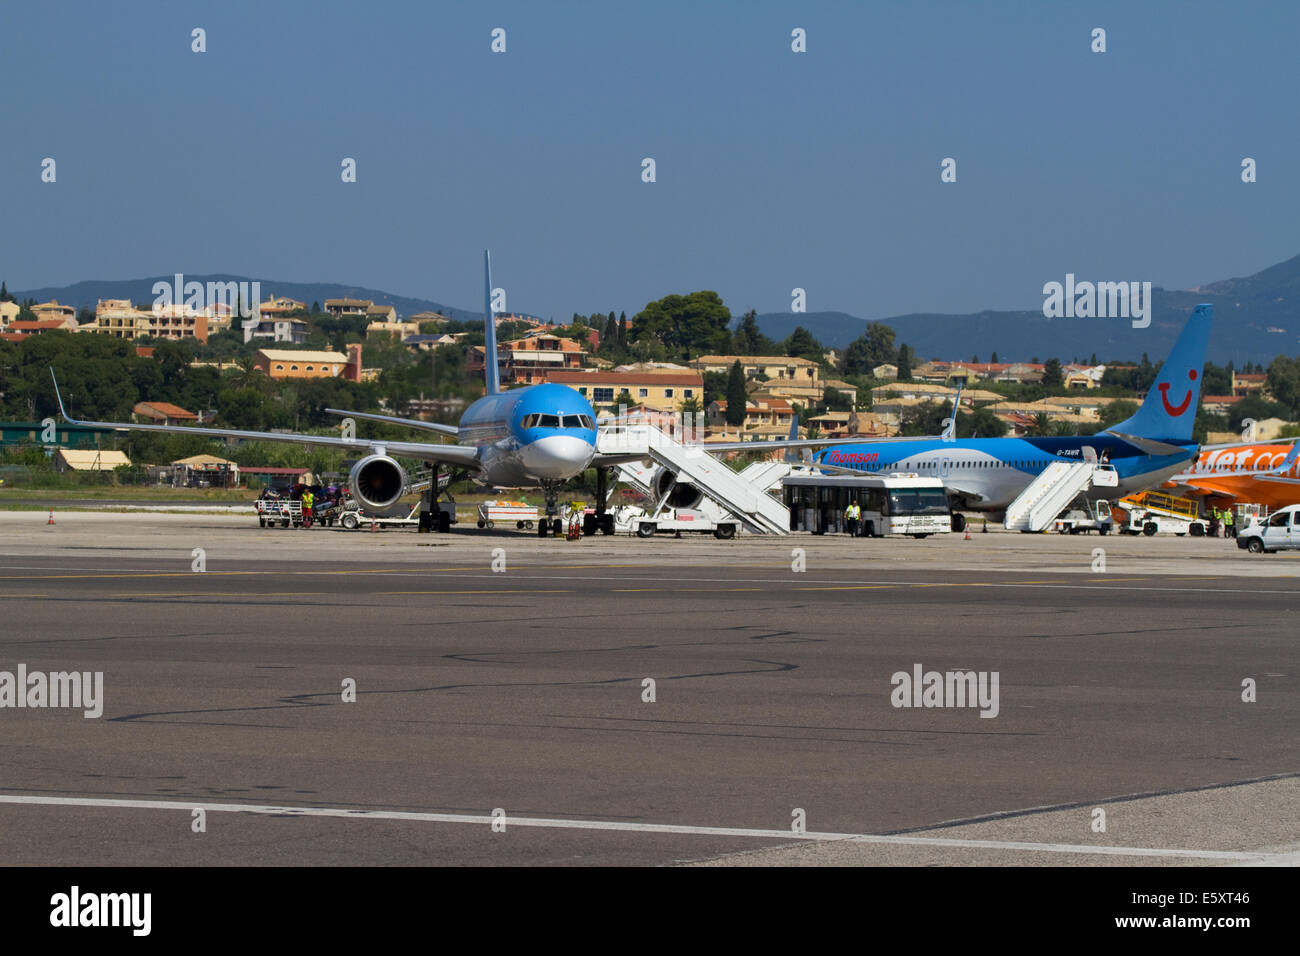 Airliners at Corfu Airport - Stock Image